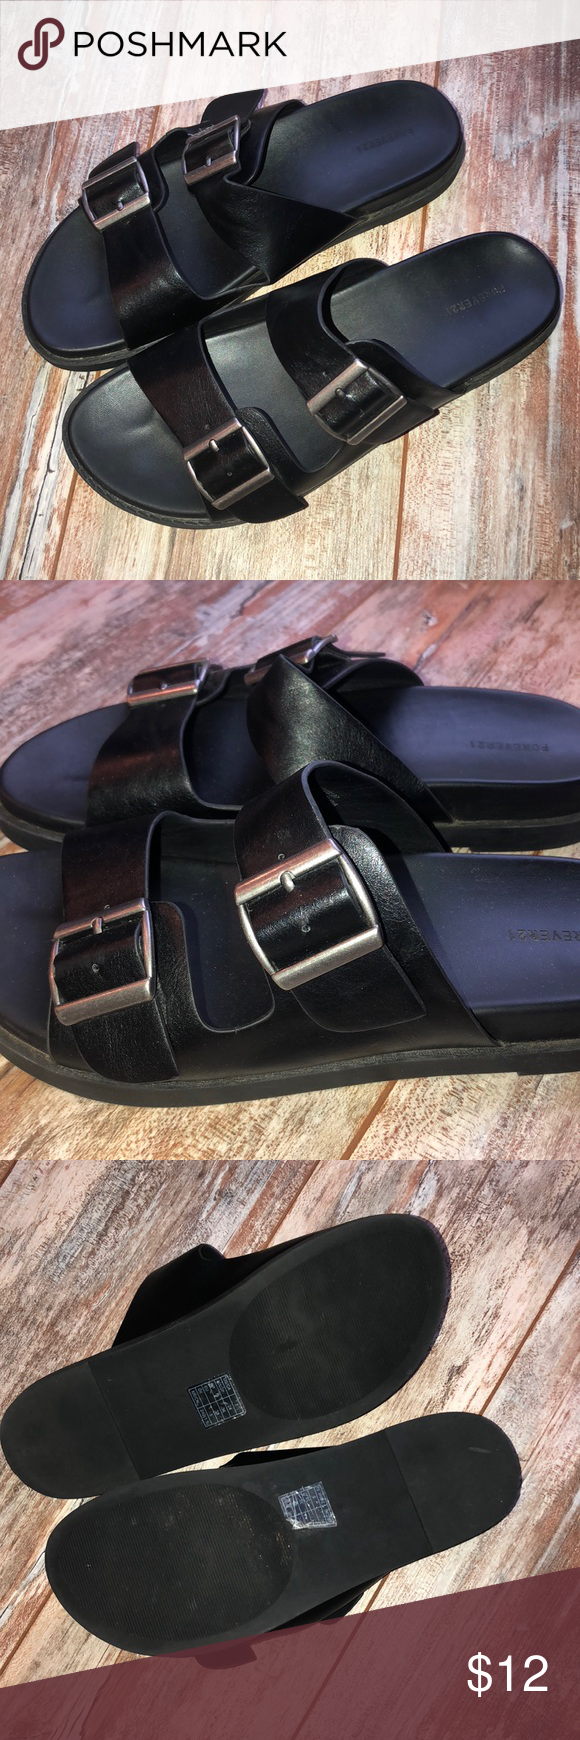 36795e94a54d Forever 21 Birkenstock Style Sandals Forever 21 all black with silver  detailing